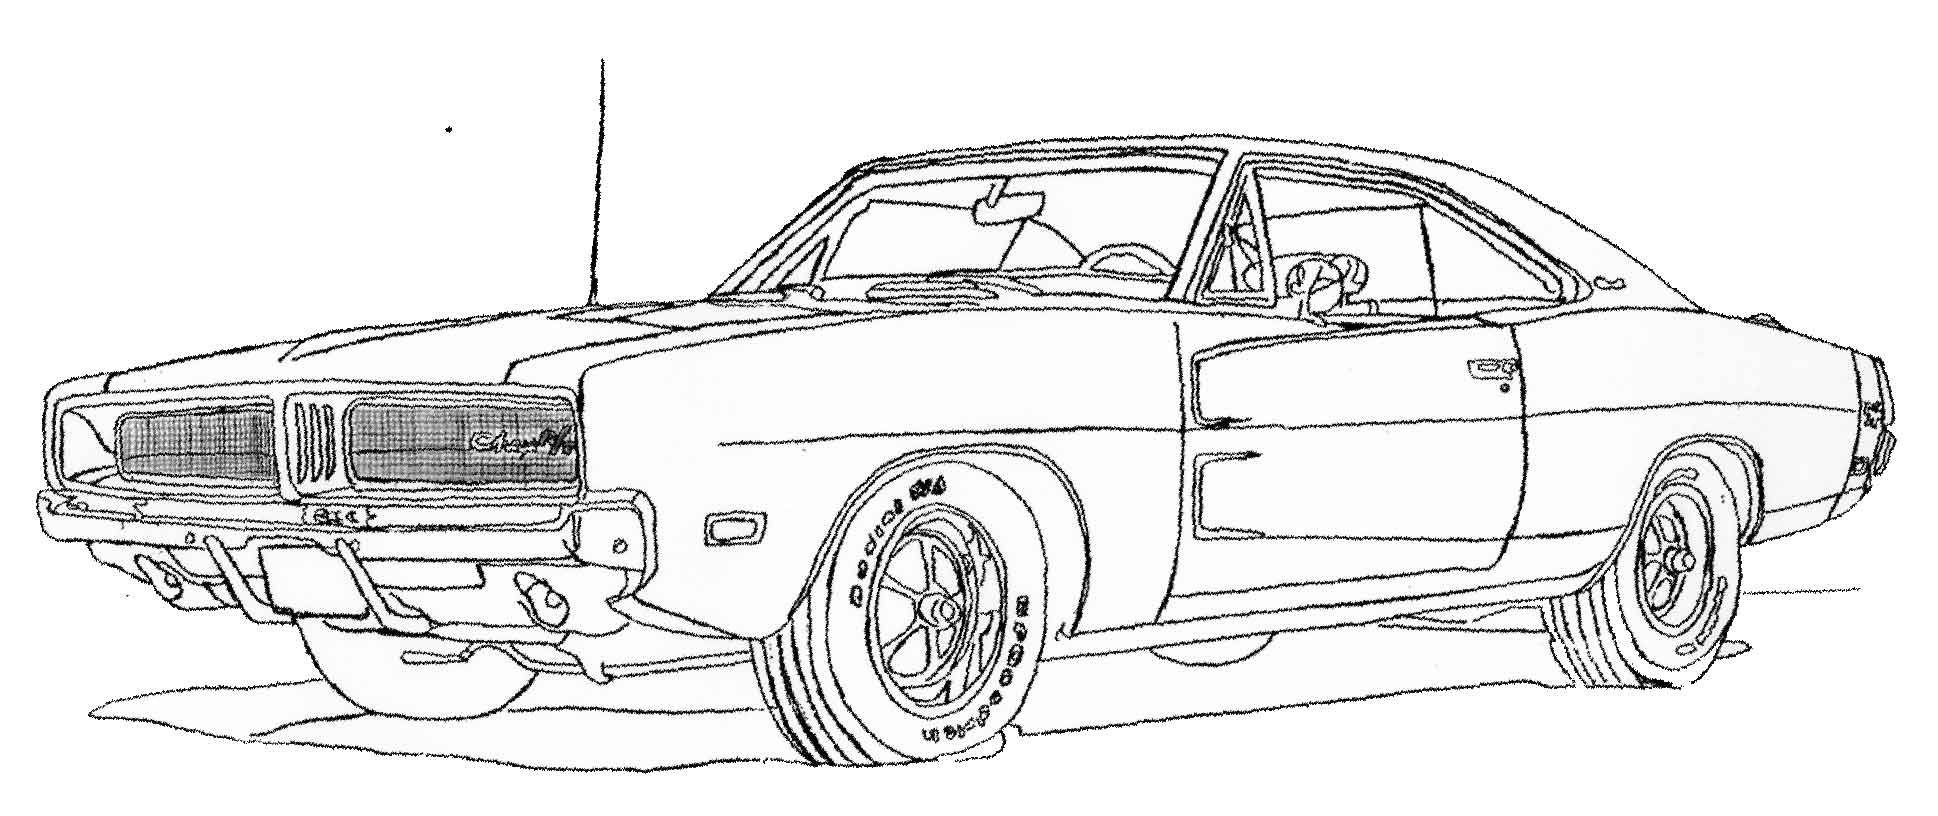 1968 mustang coloring pages photo - 1